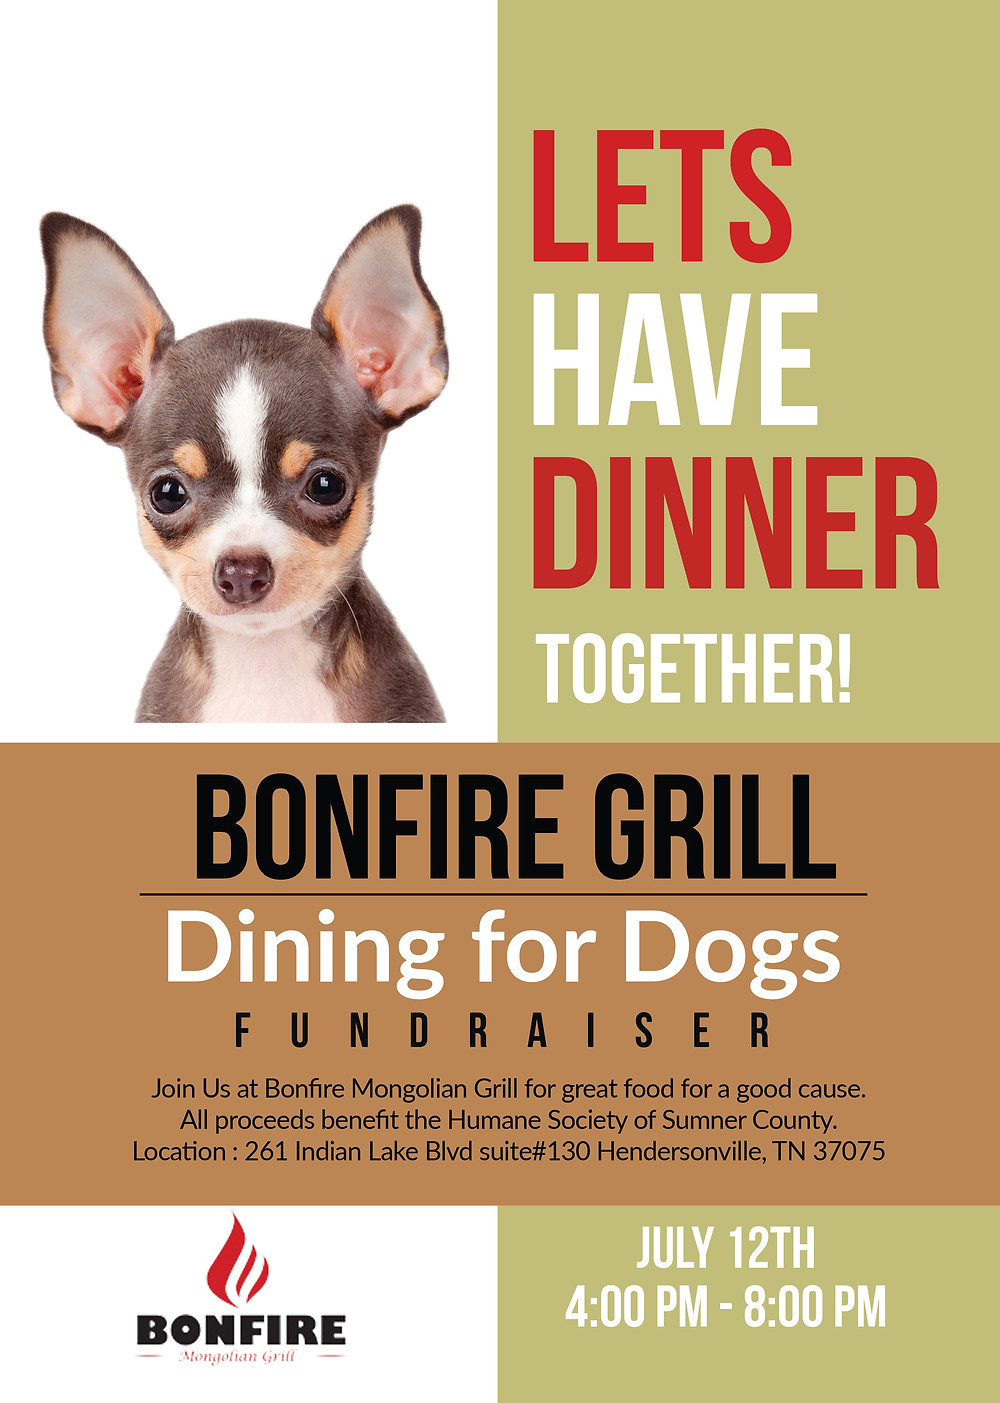 dining for dogs humane society at Bonfire Mongolian Grill in Hendersonville TN